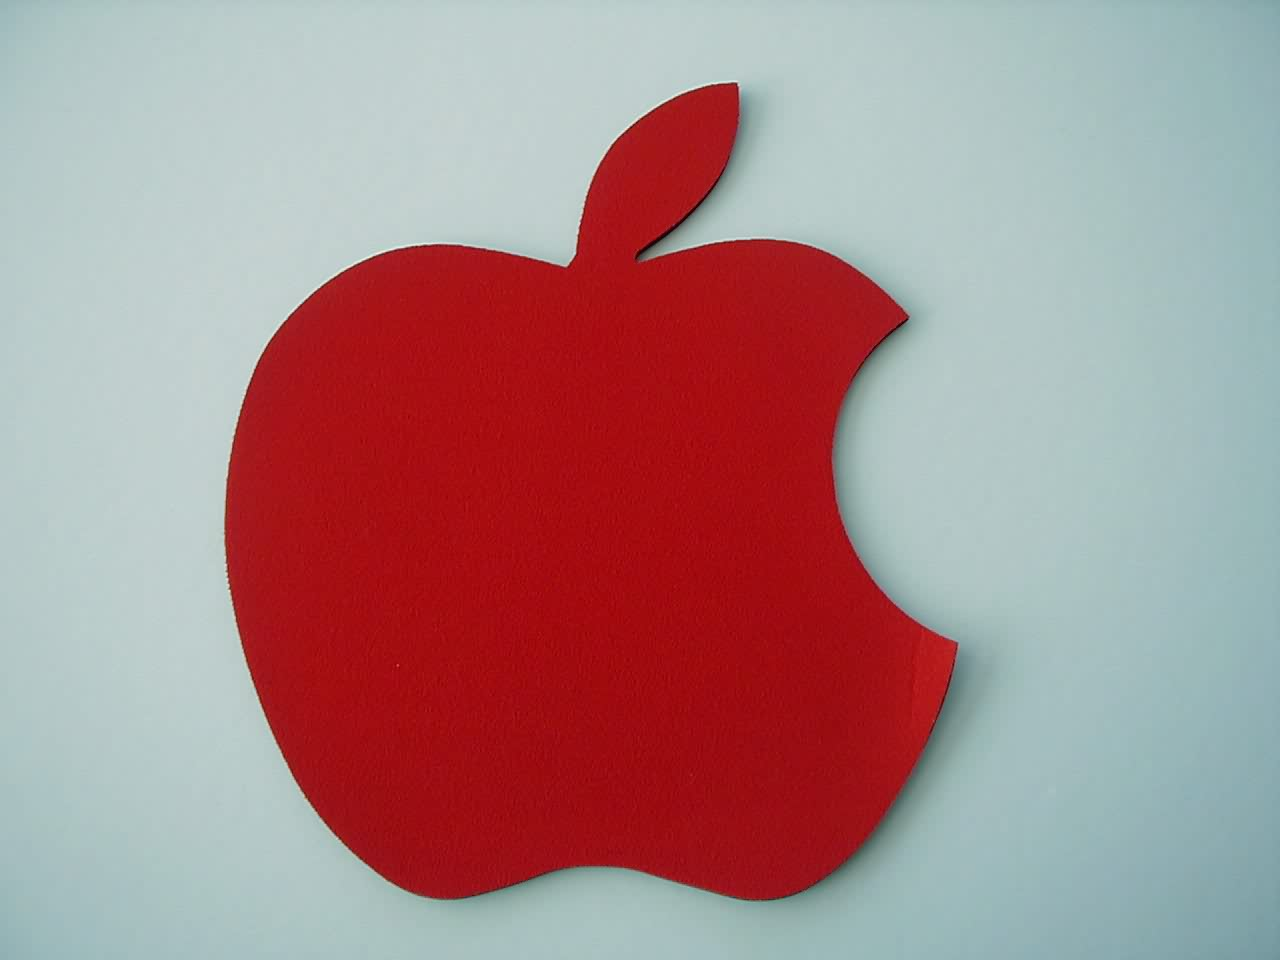 Apple Shape Rubber Mouse Pad Guangzhou Supergo Plastics